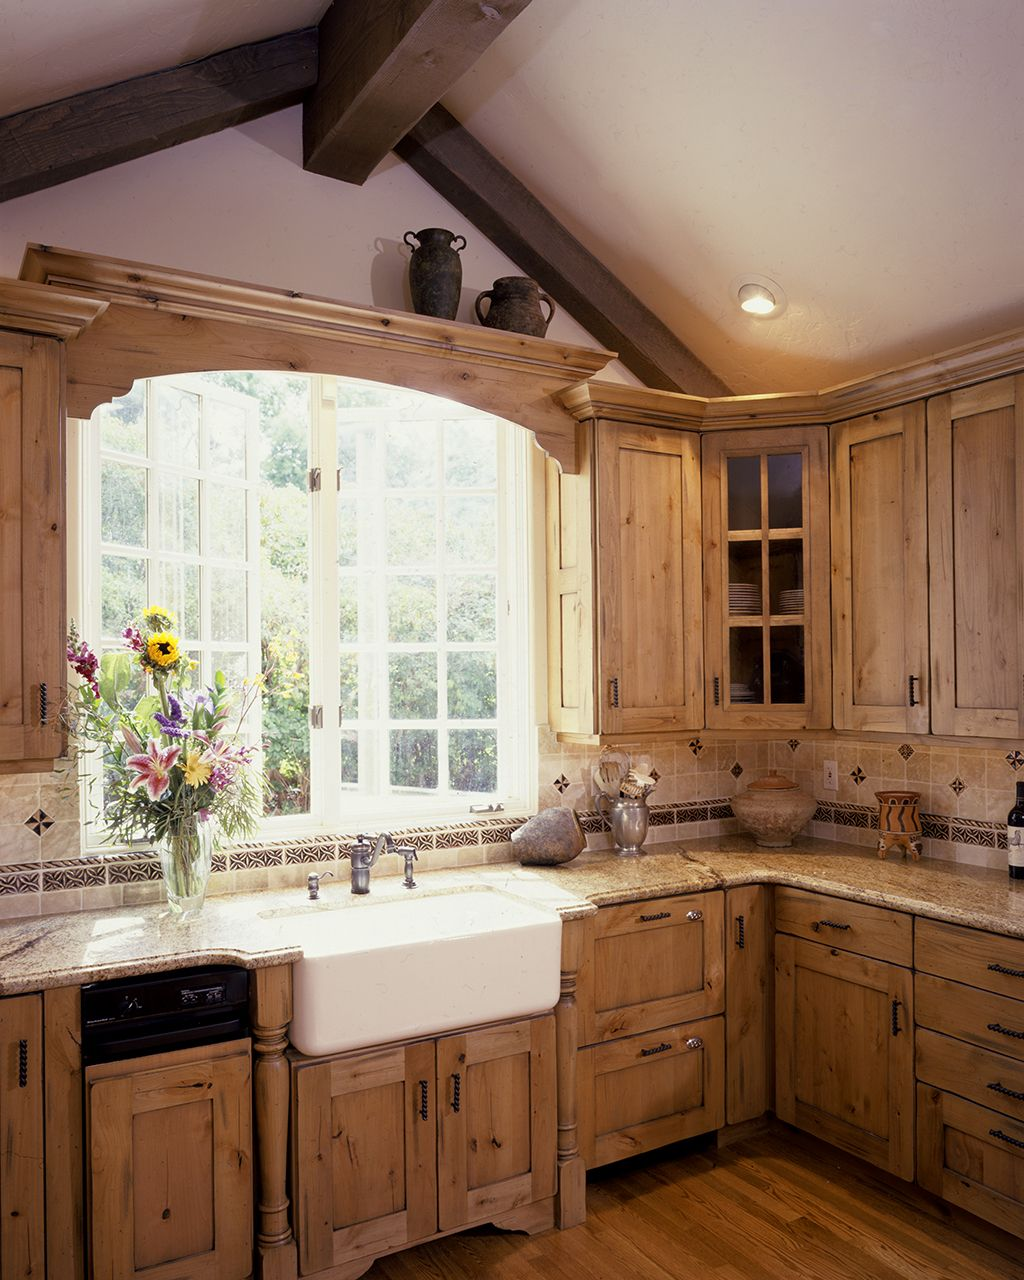 Country Kitchen Remodel Bright Country Kitchen In The Suburbs Remodel Ideas Pinterest